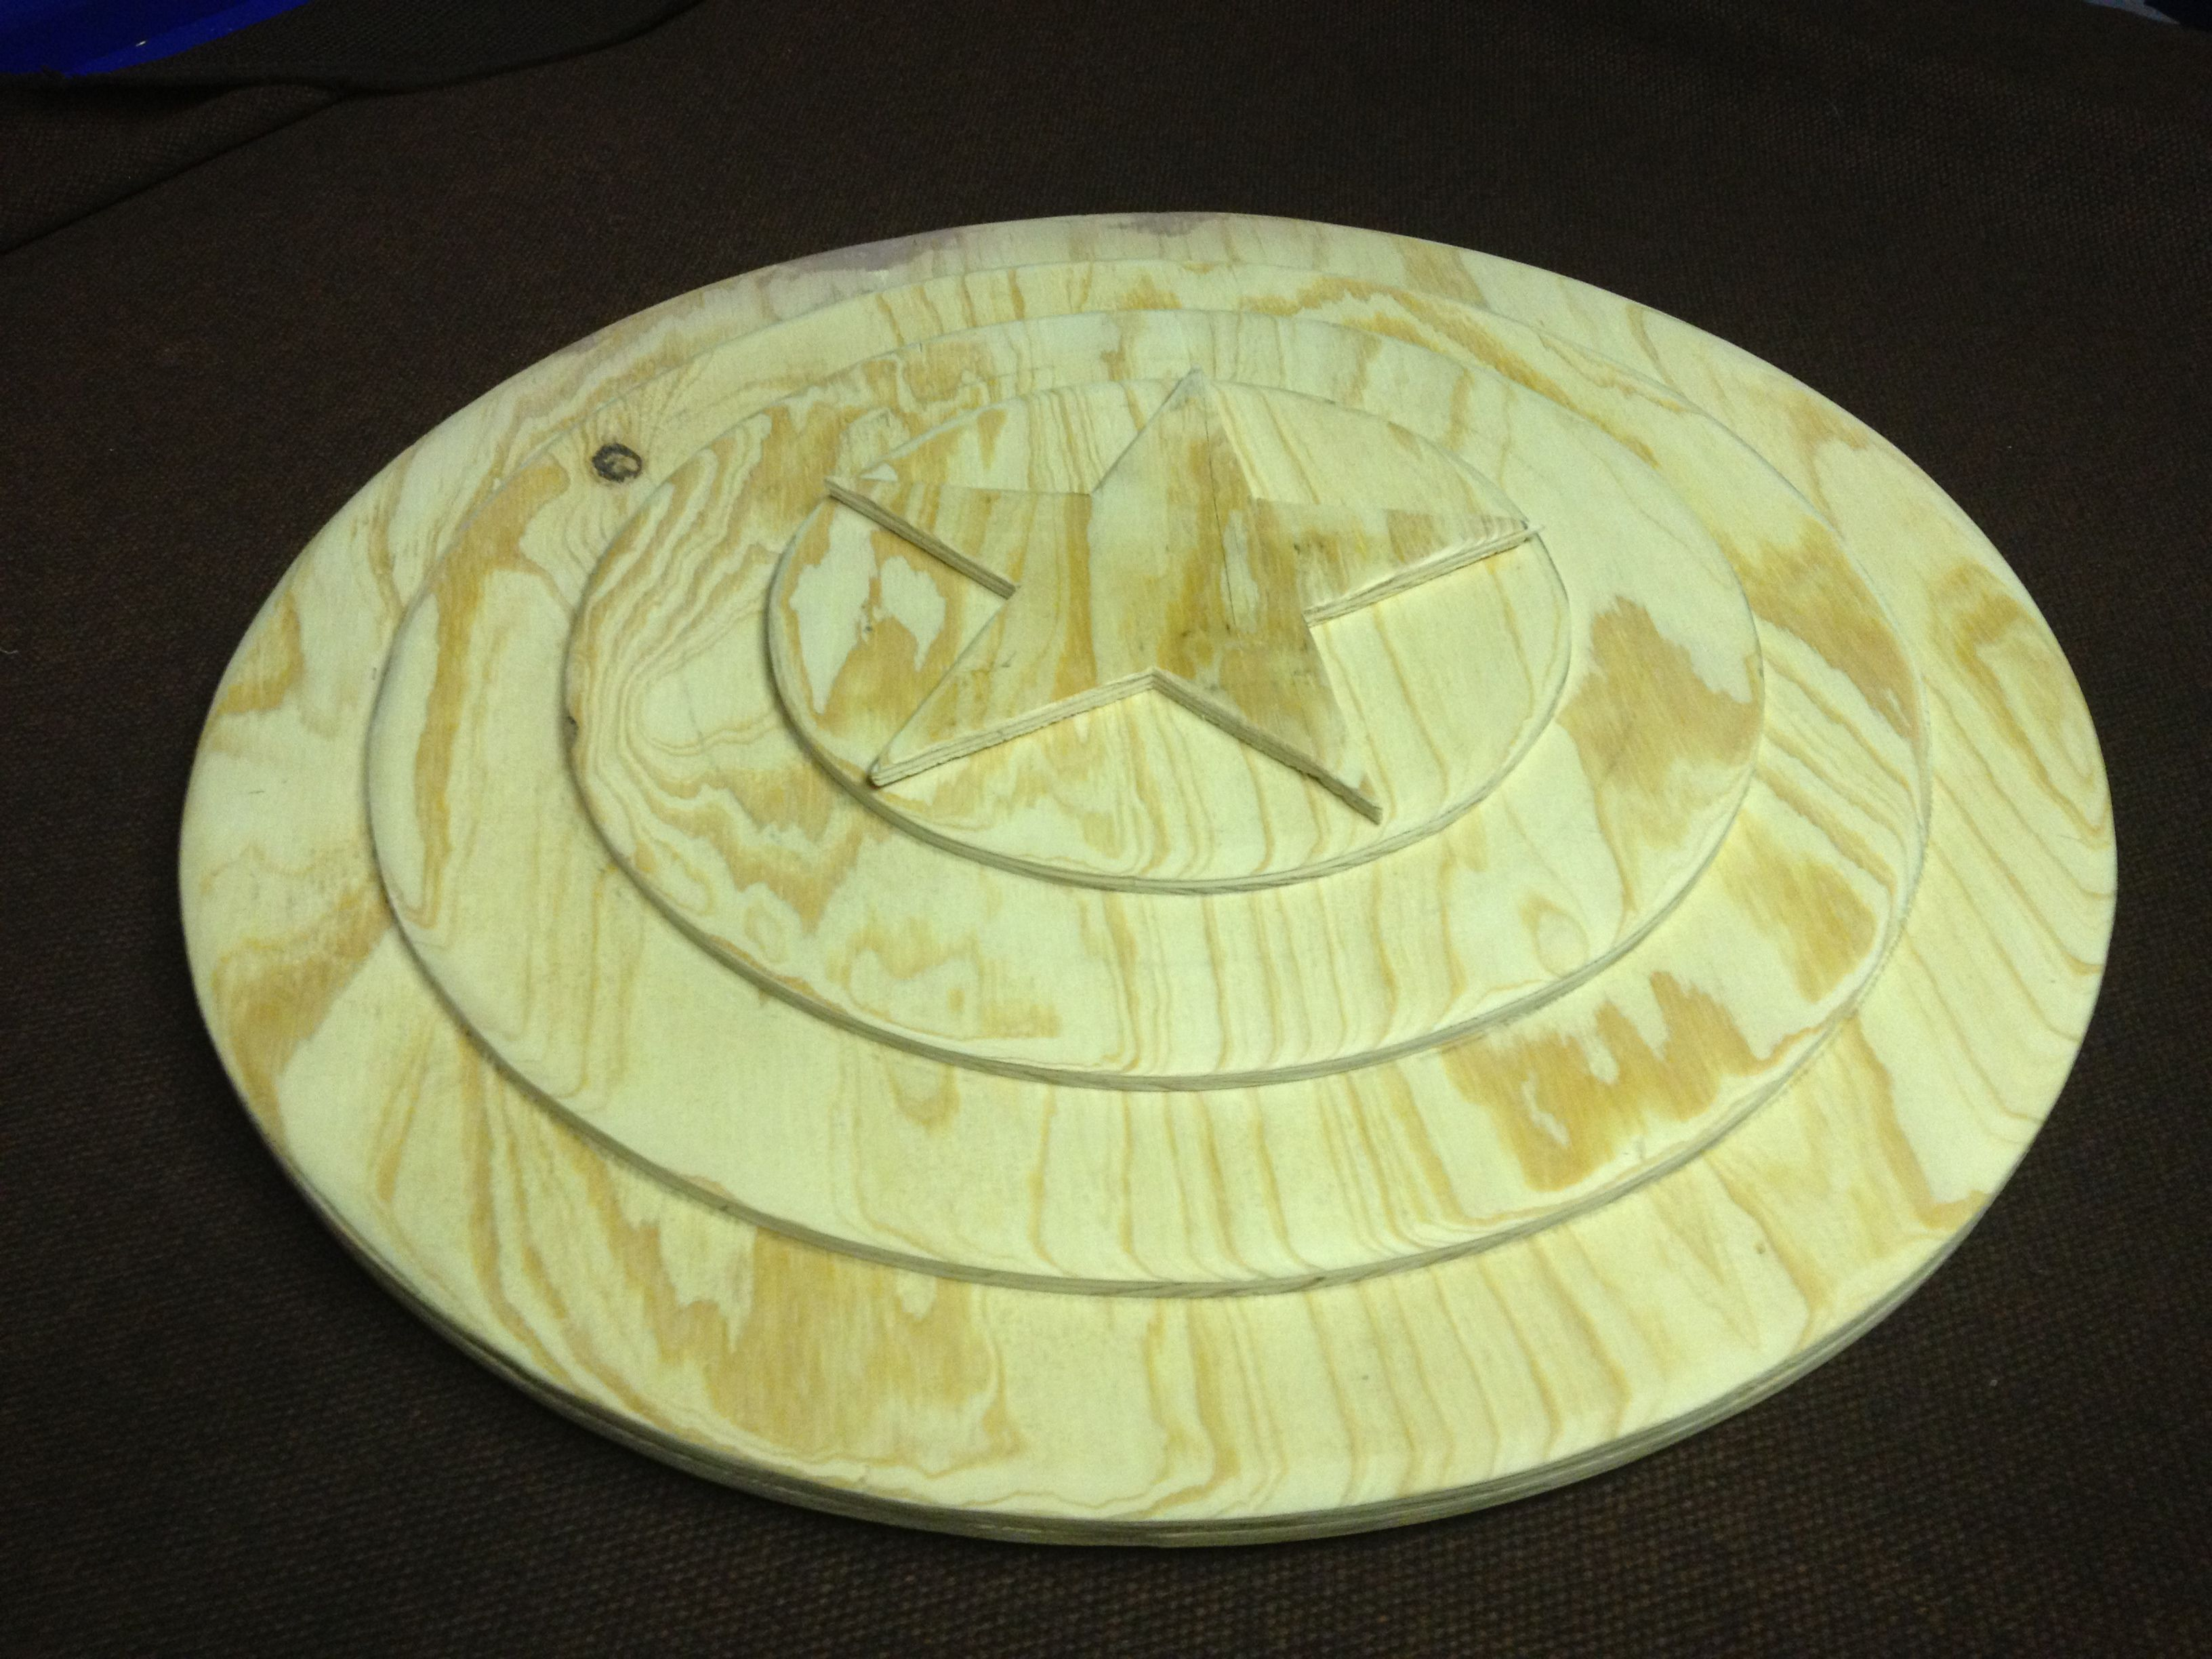 Plywood Captain America Shield Crafts Woodworking Captain